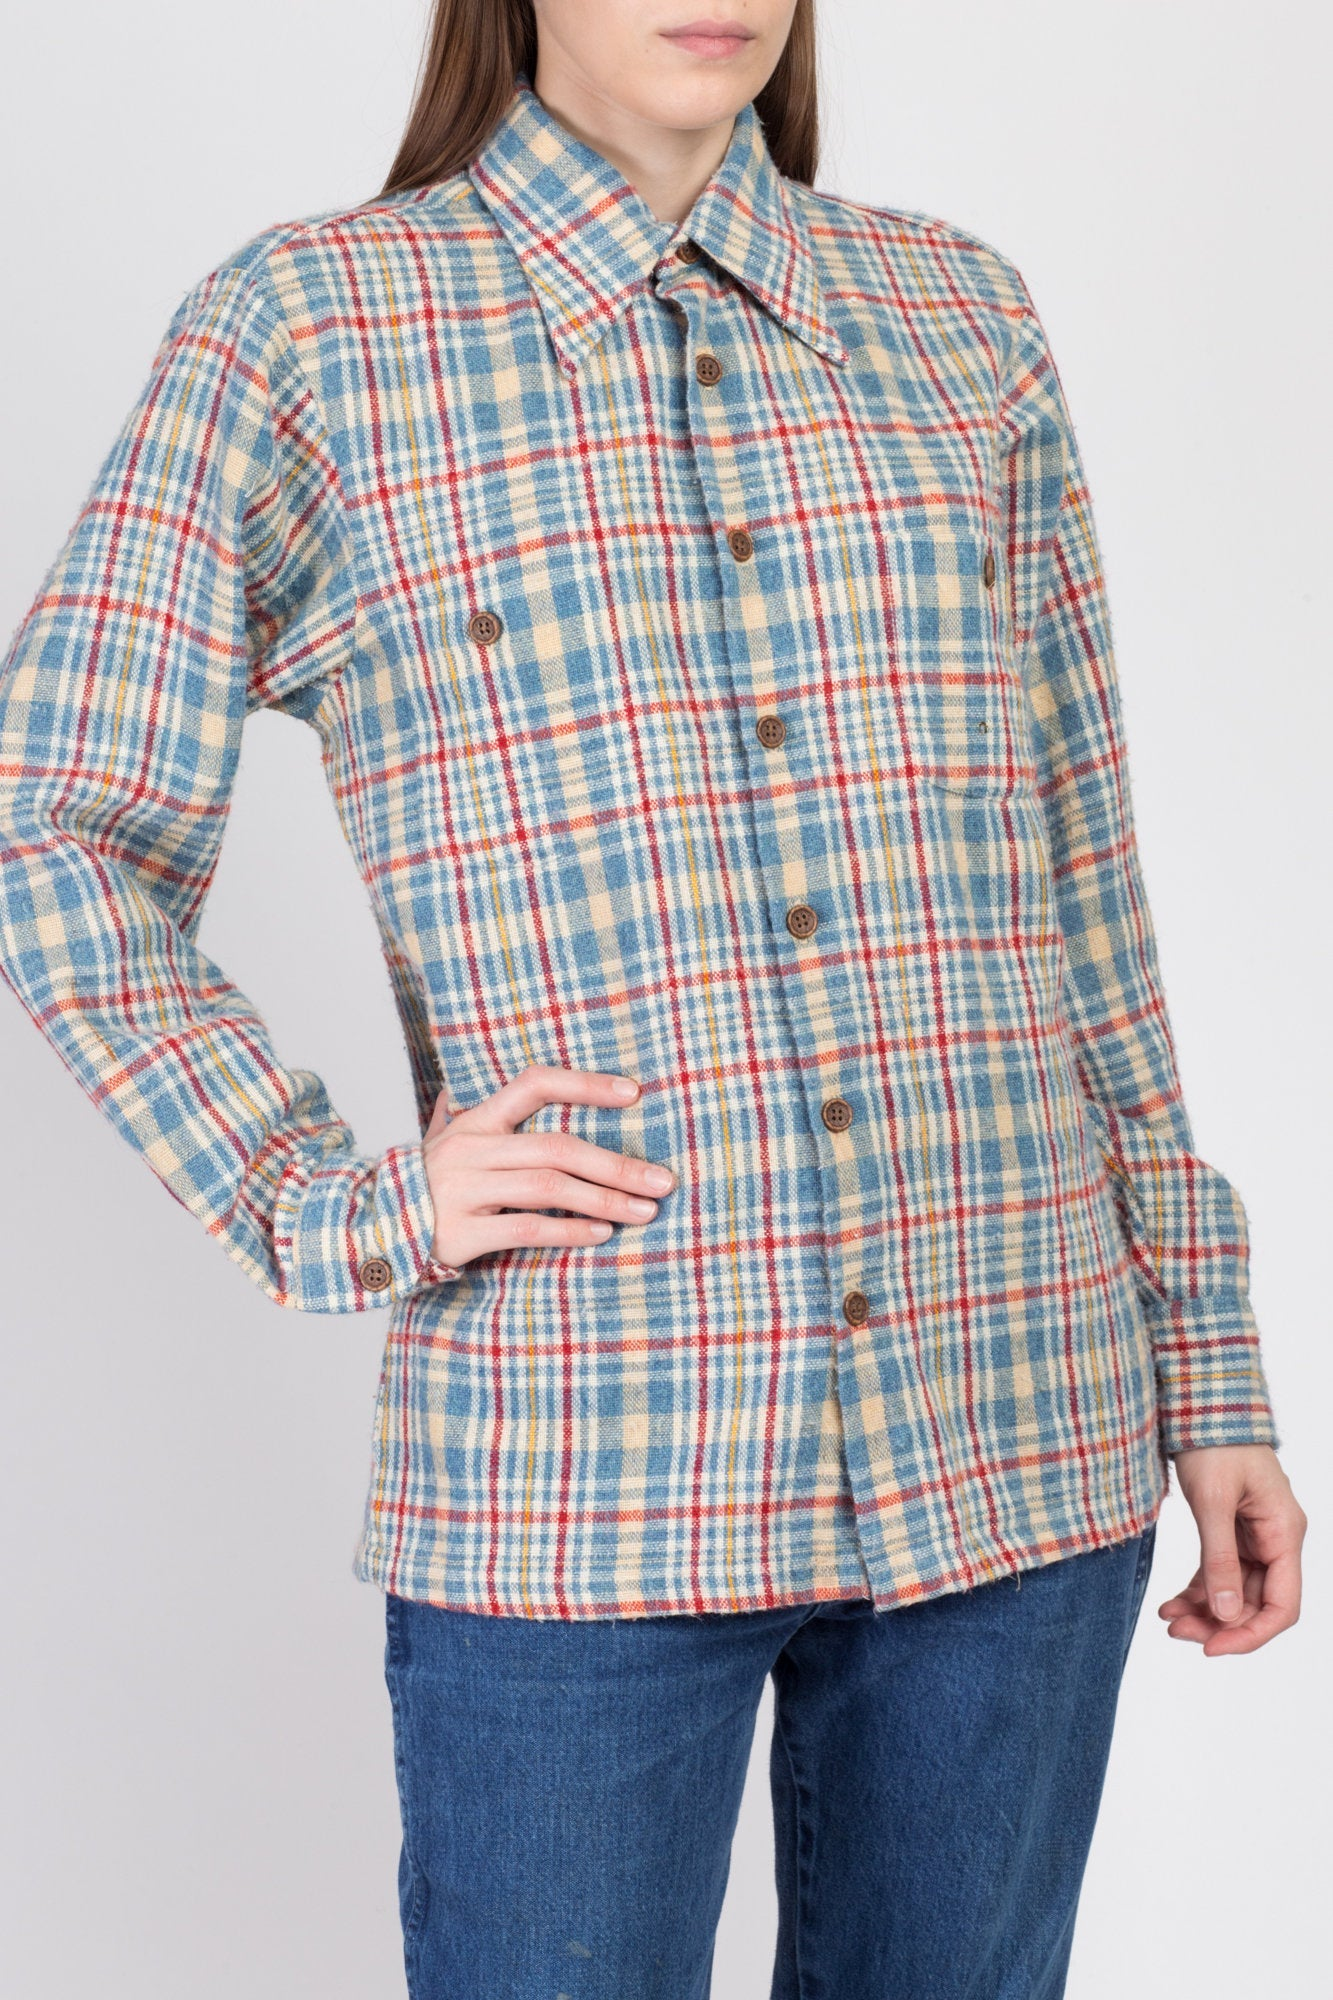 70s Plaid Knit Workwear Shirt - Men's Medium